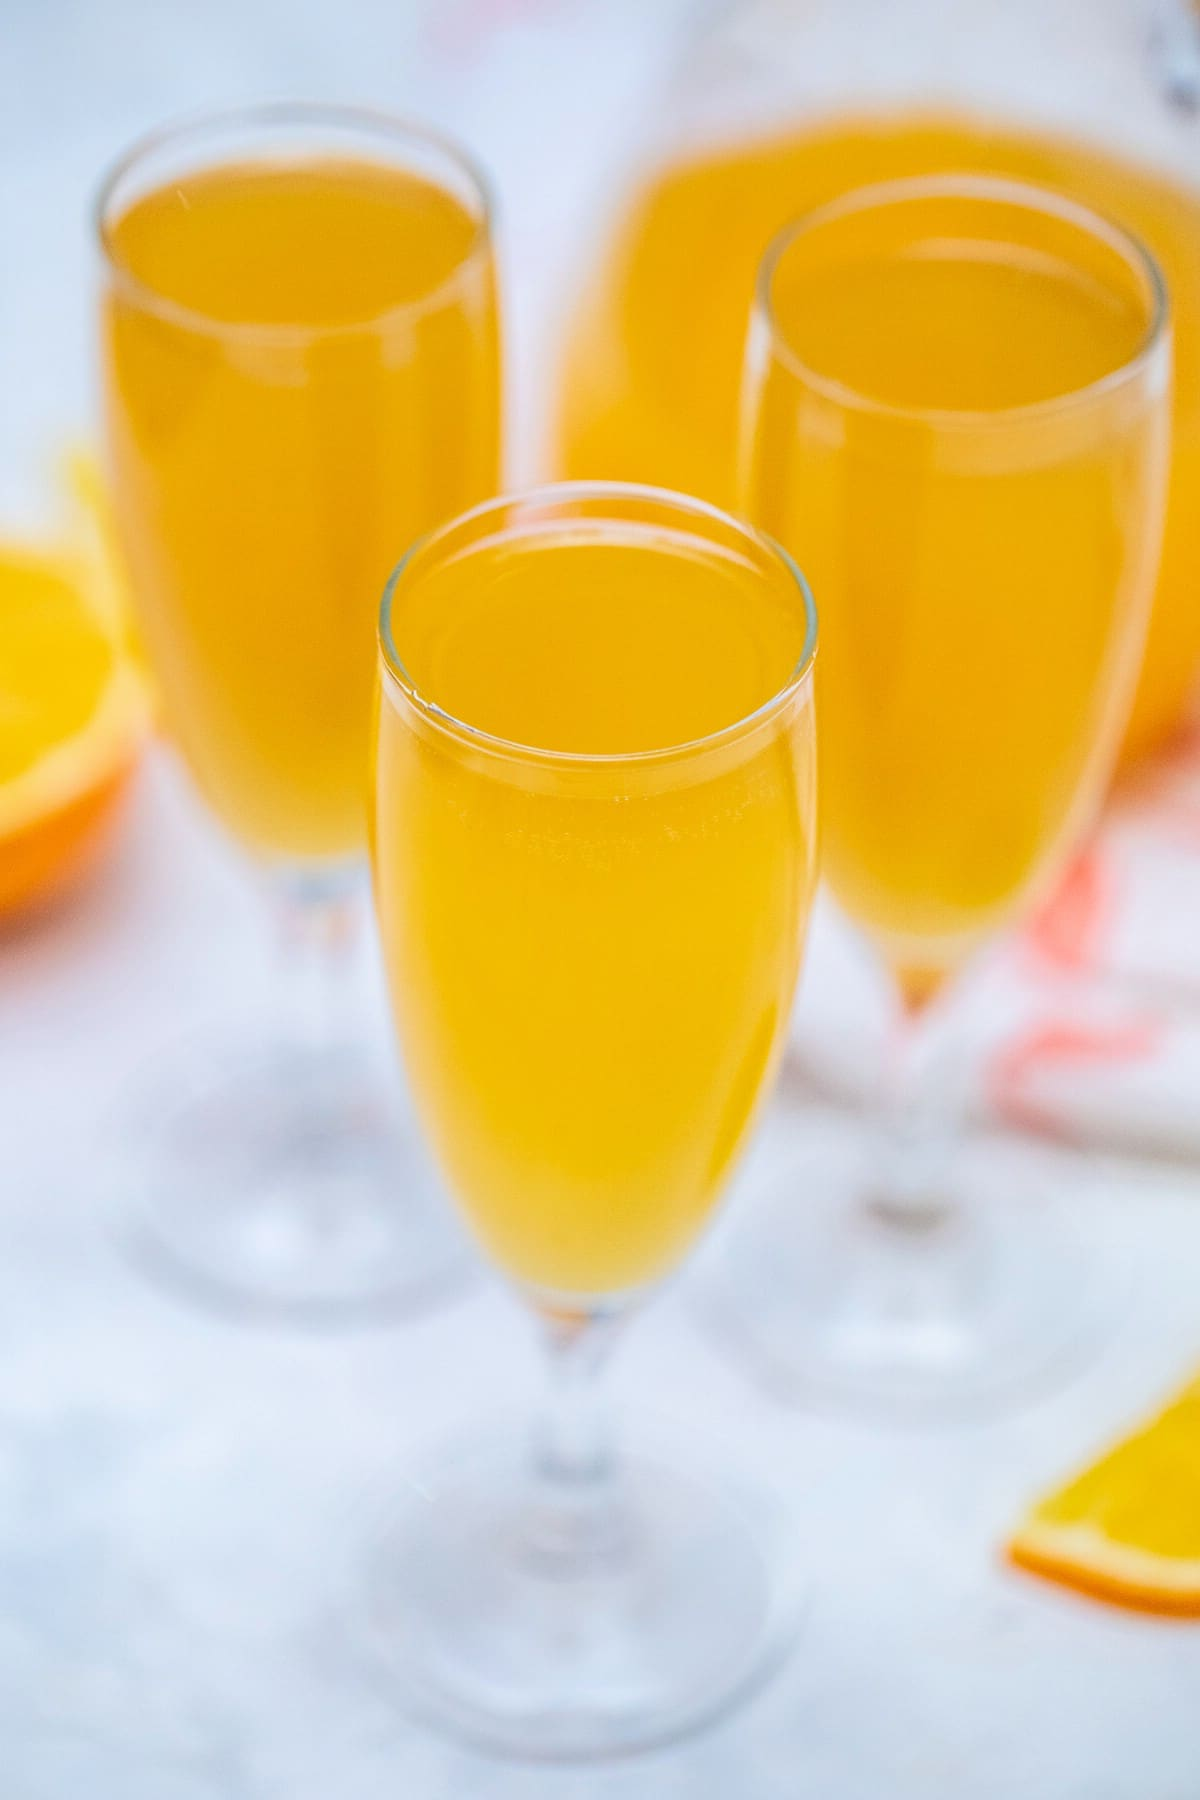 Champagne flutes filled with mimosa